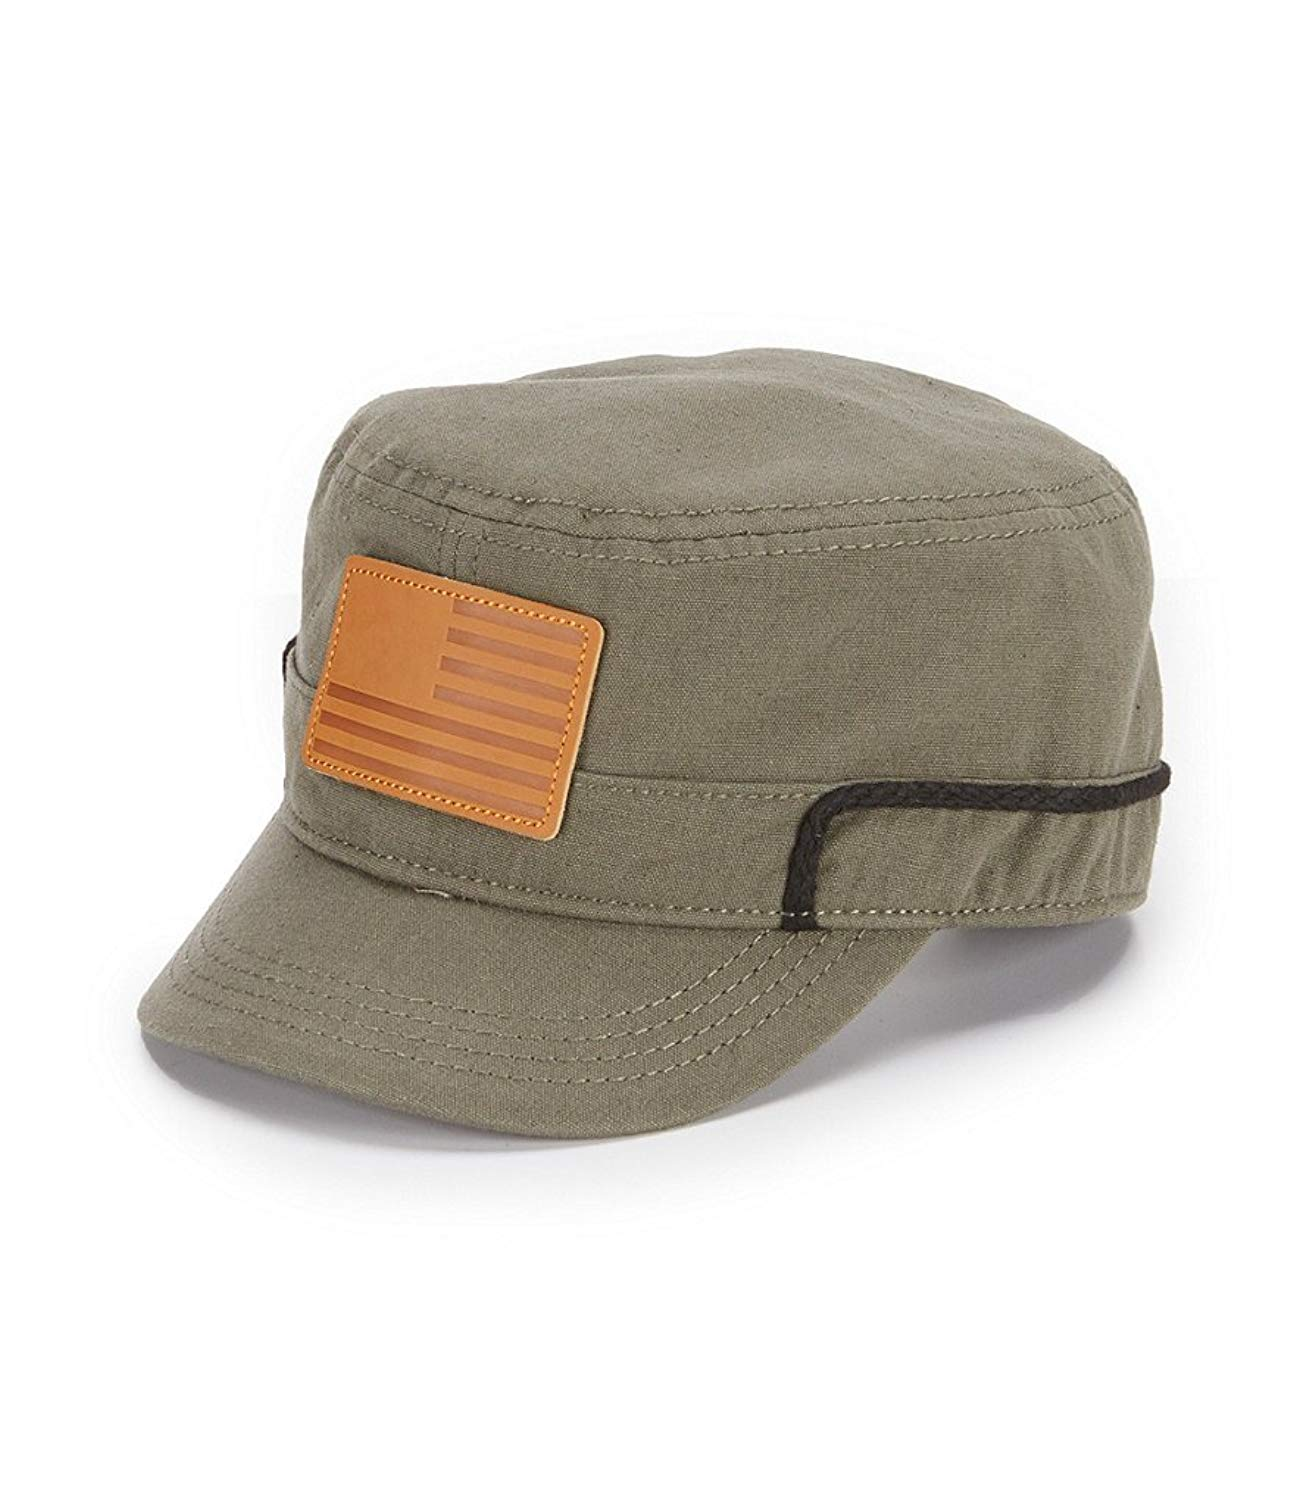 06cbbbbb80404f Get Quotations · Cremieux Men's Military Cap Leather USA Flag Patch Hat Army  Green Medium/Large